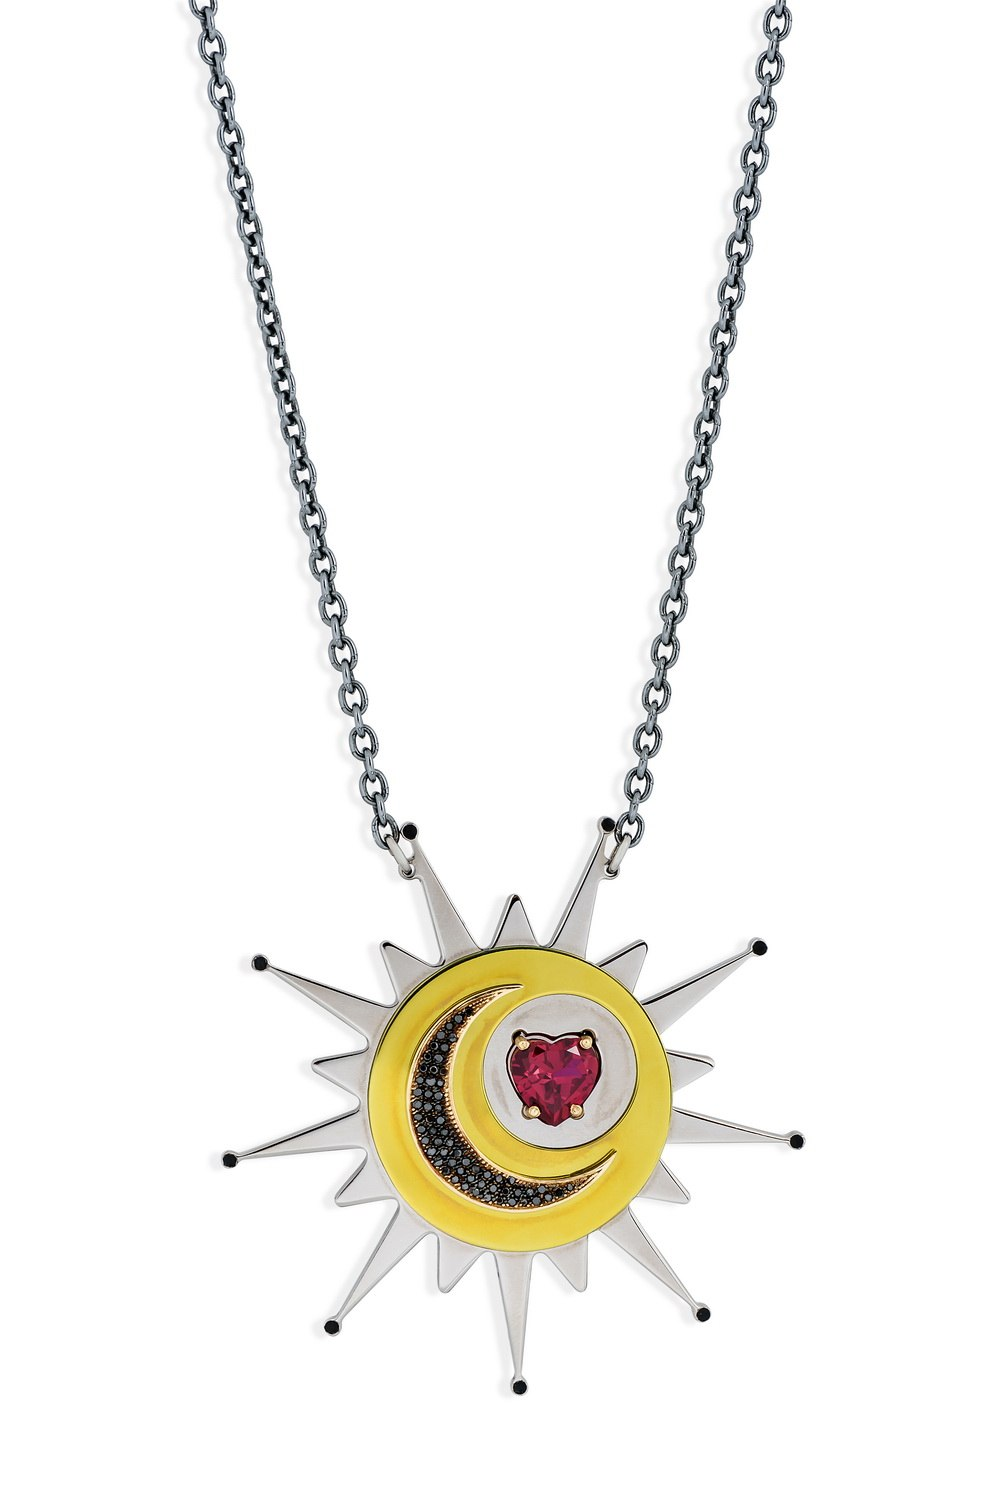 ANASTASIA KESSARIS Red Heart Sun Pendant Necklace With Black Diamond Moon KRE180622